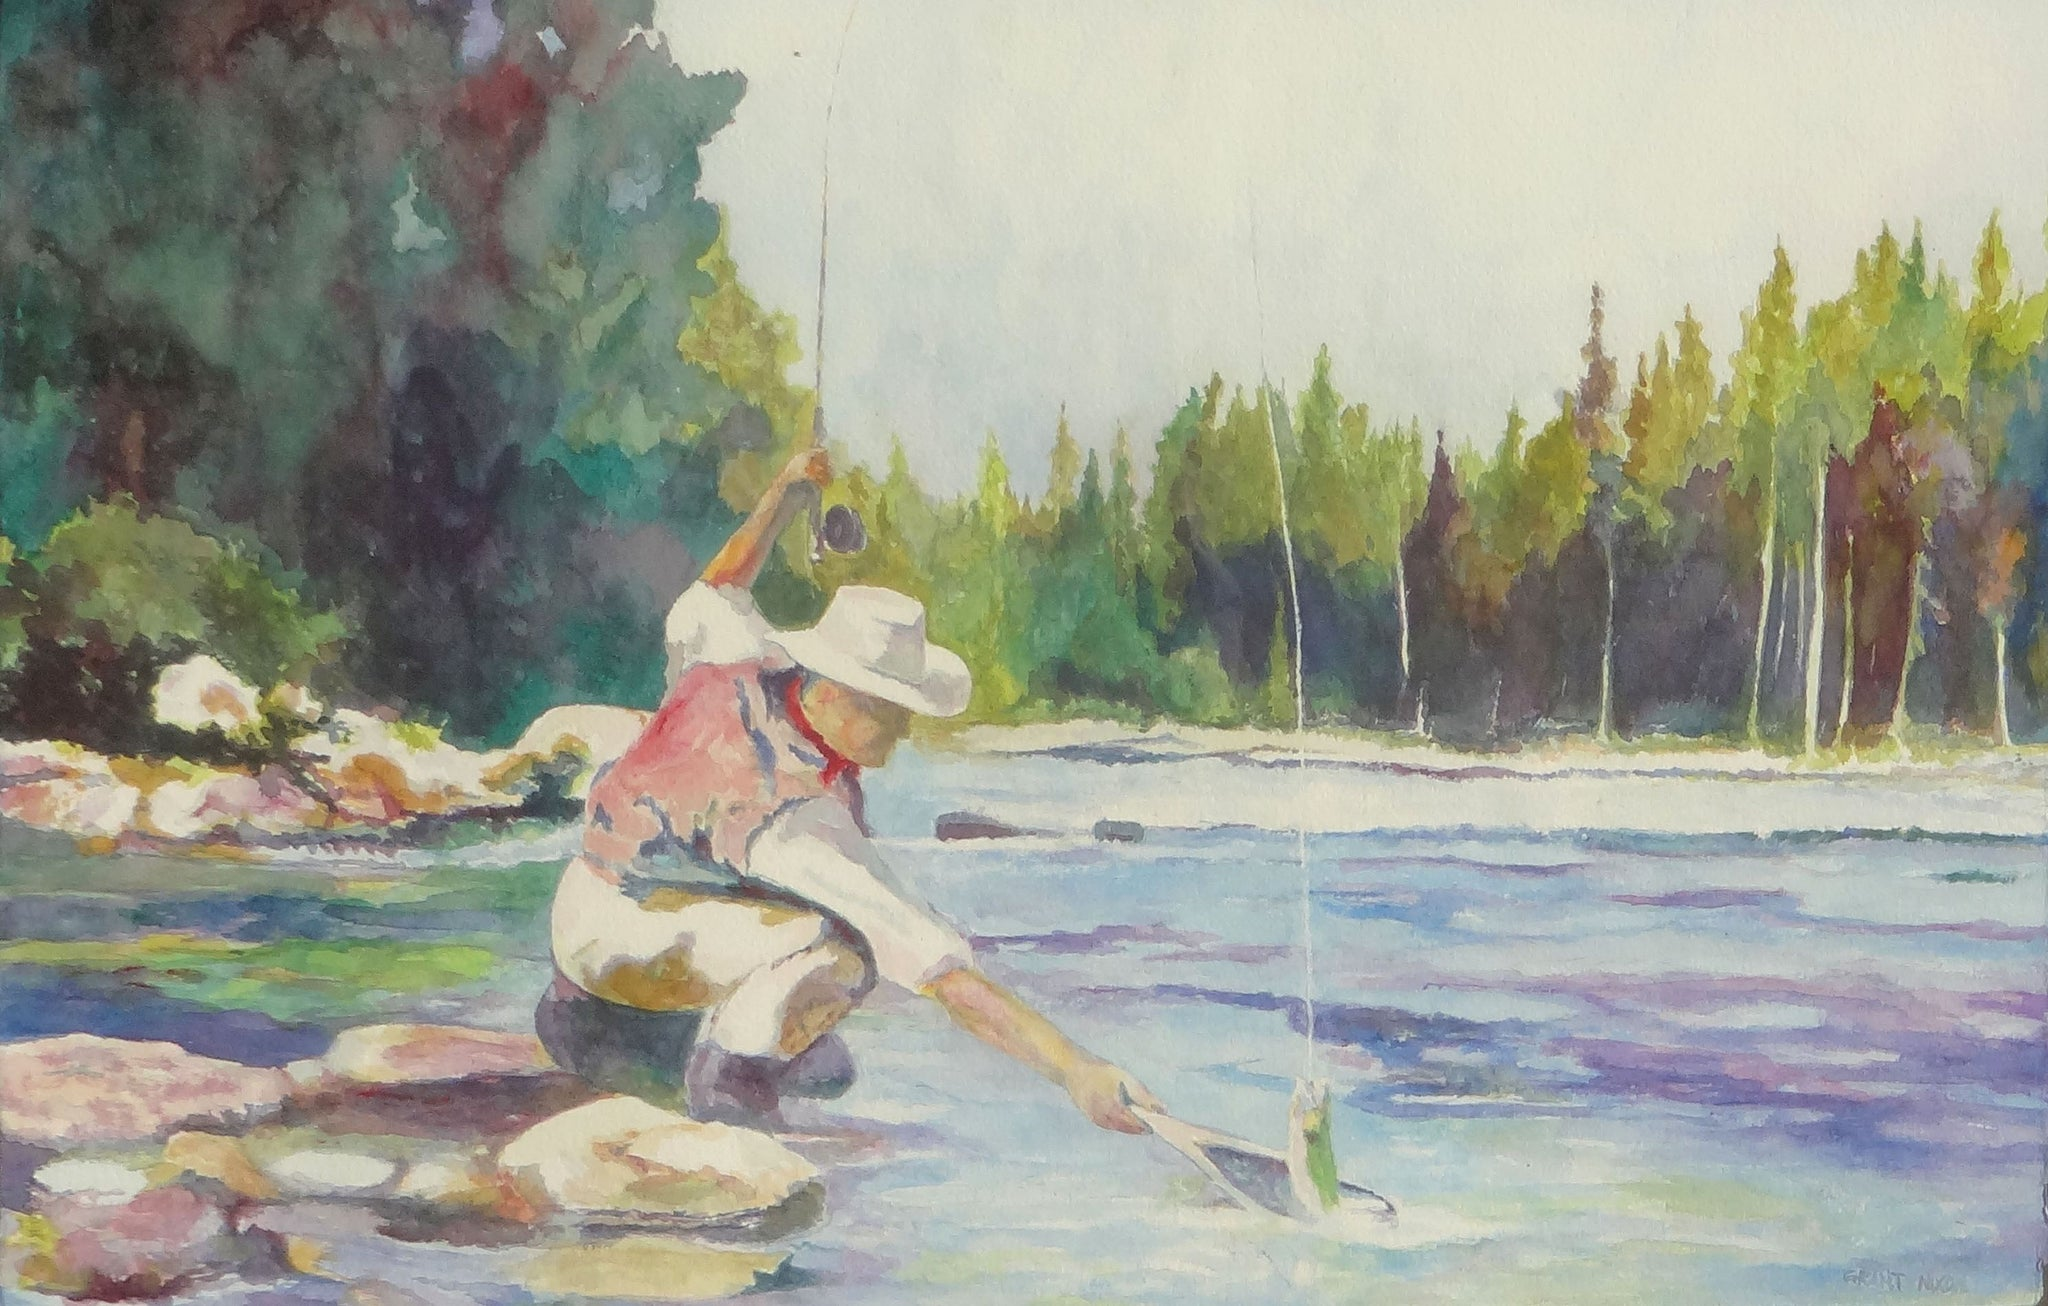 Fishing on the Moyie by Grant Nixon fine art: painting: sporting, grant nixon, paintings, paintings-fishing, watercolor